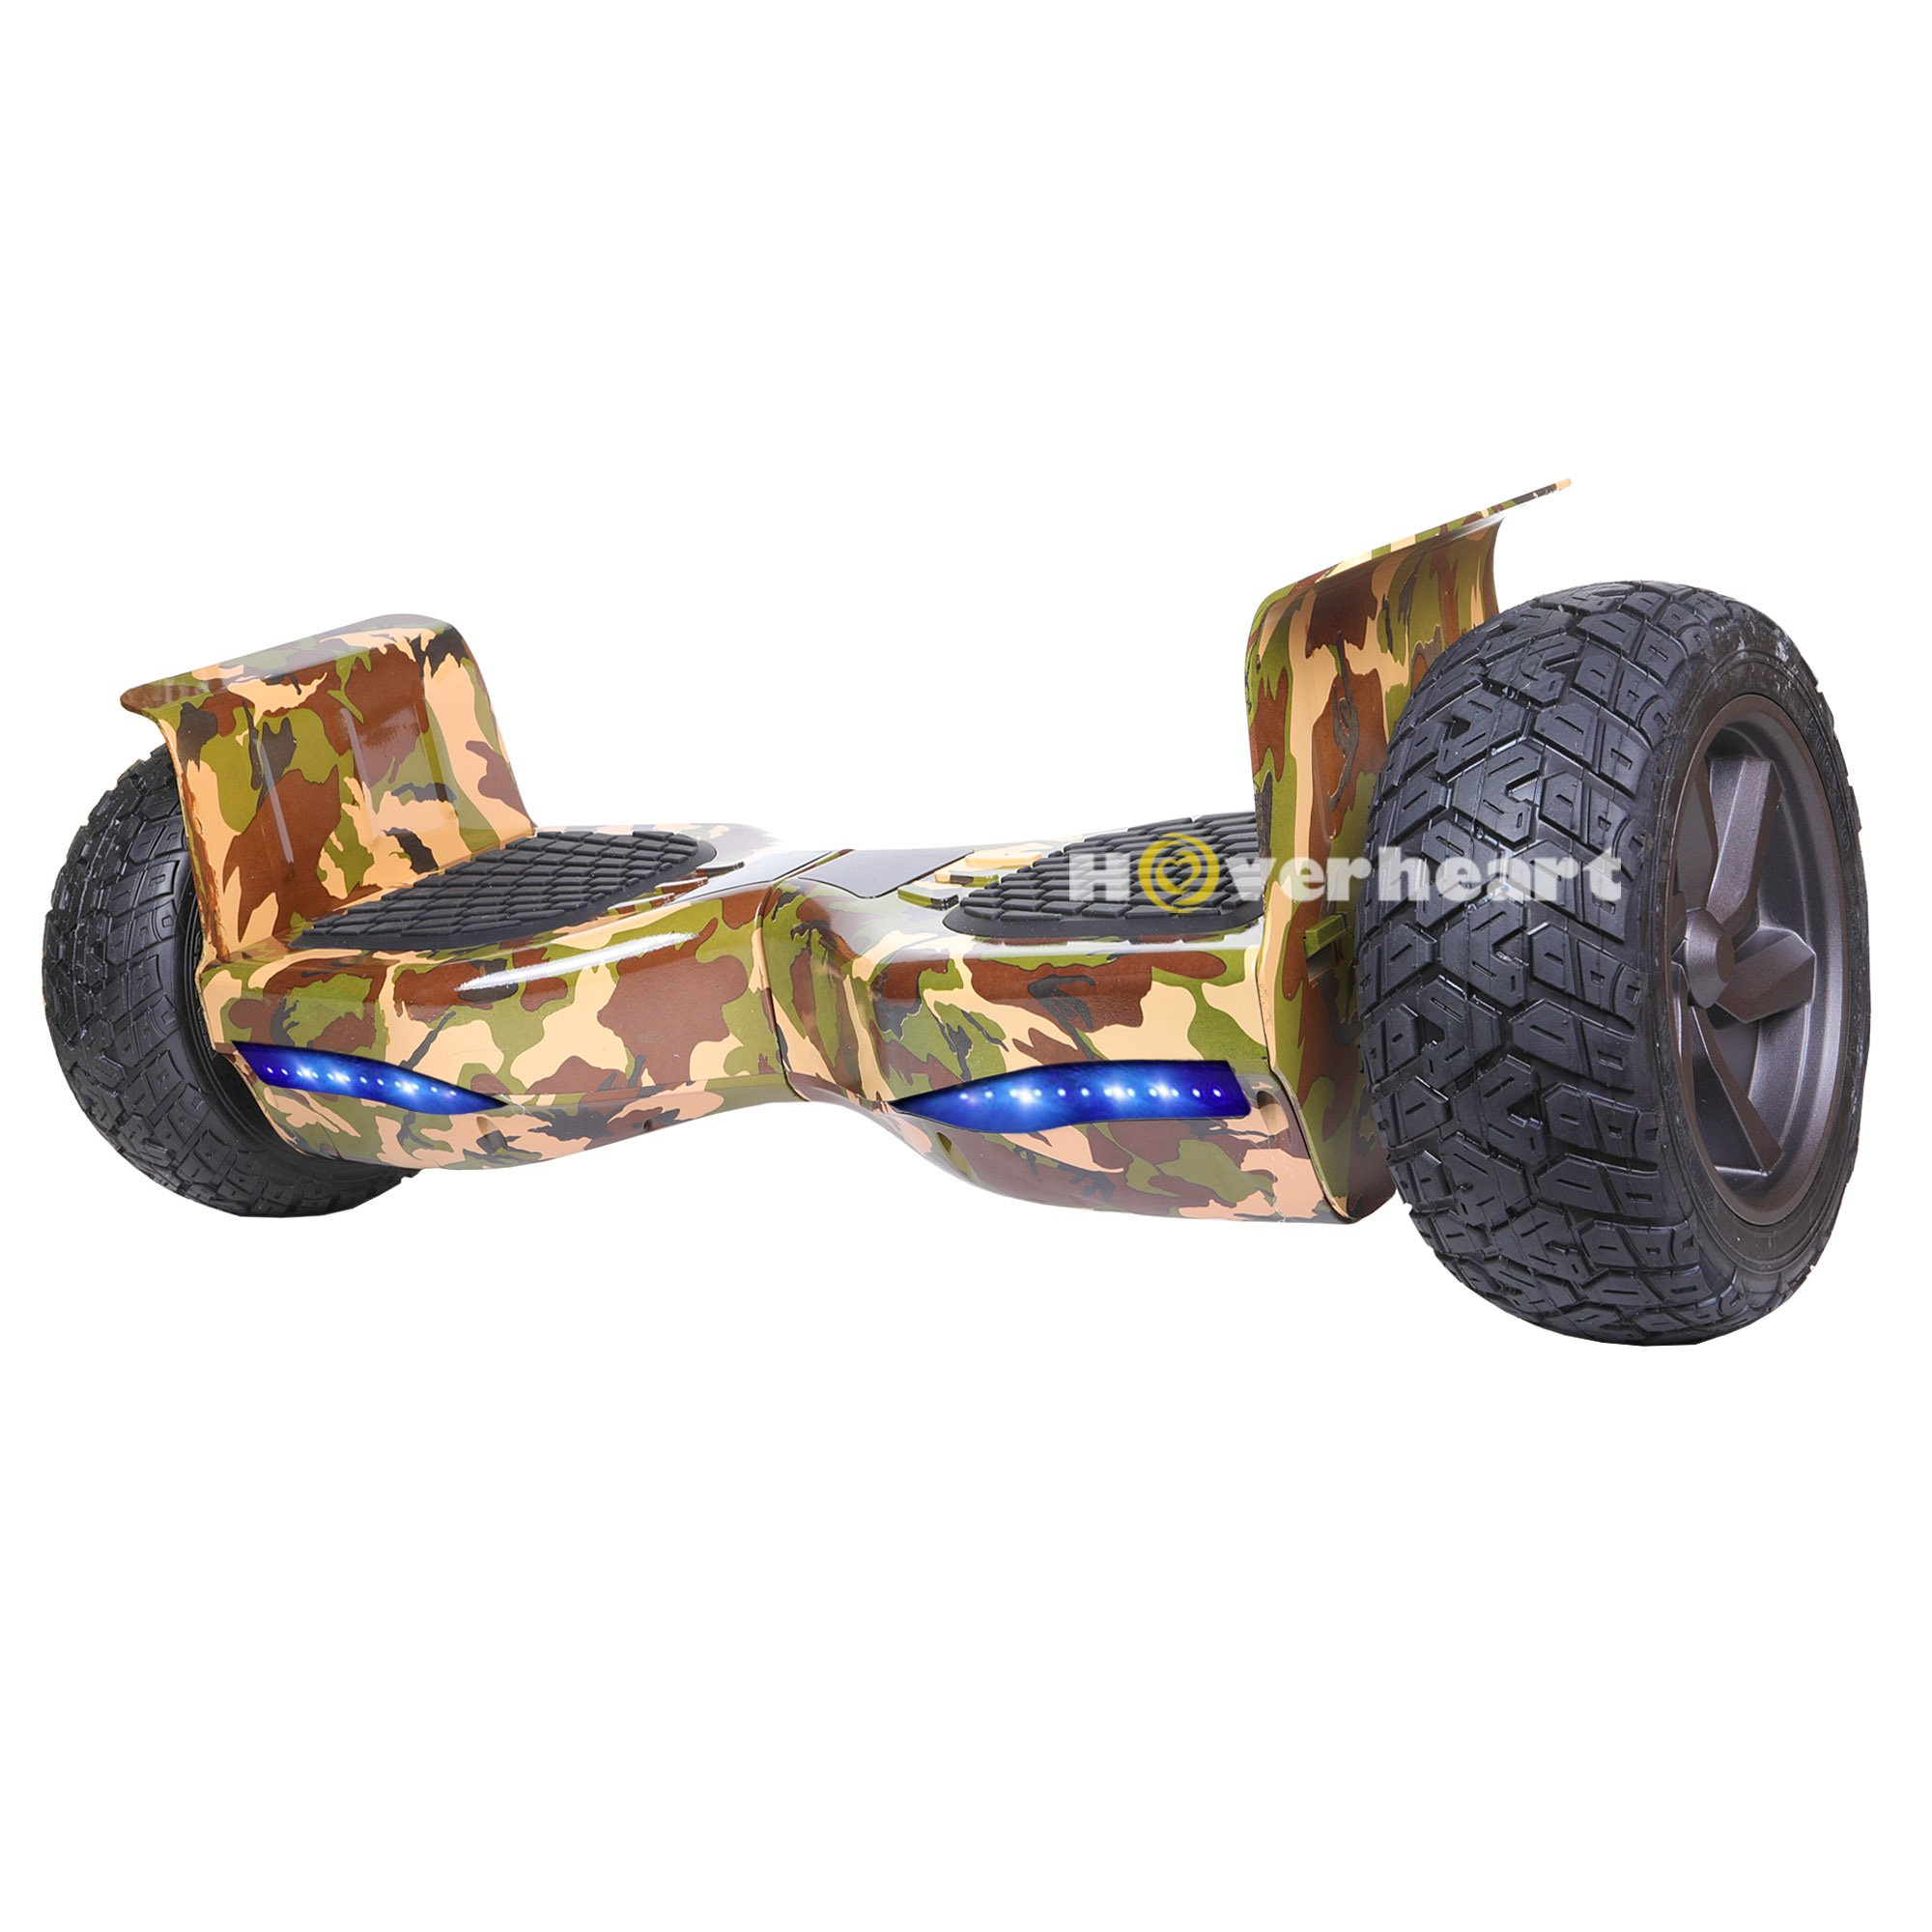 Hoverboard 8.5'' Two-Wheel Metal Self Balancing All-Terrain Alloy Wheel Electric Scooter UL 2272 Certified (Camouflage) by HOVERHEART